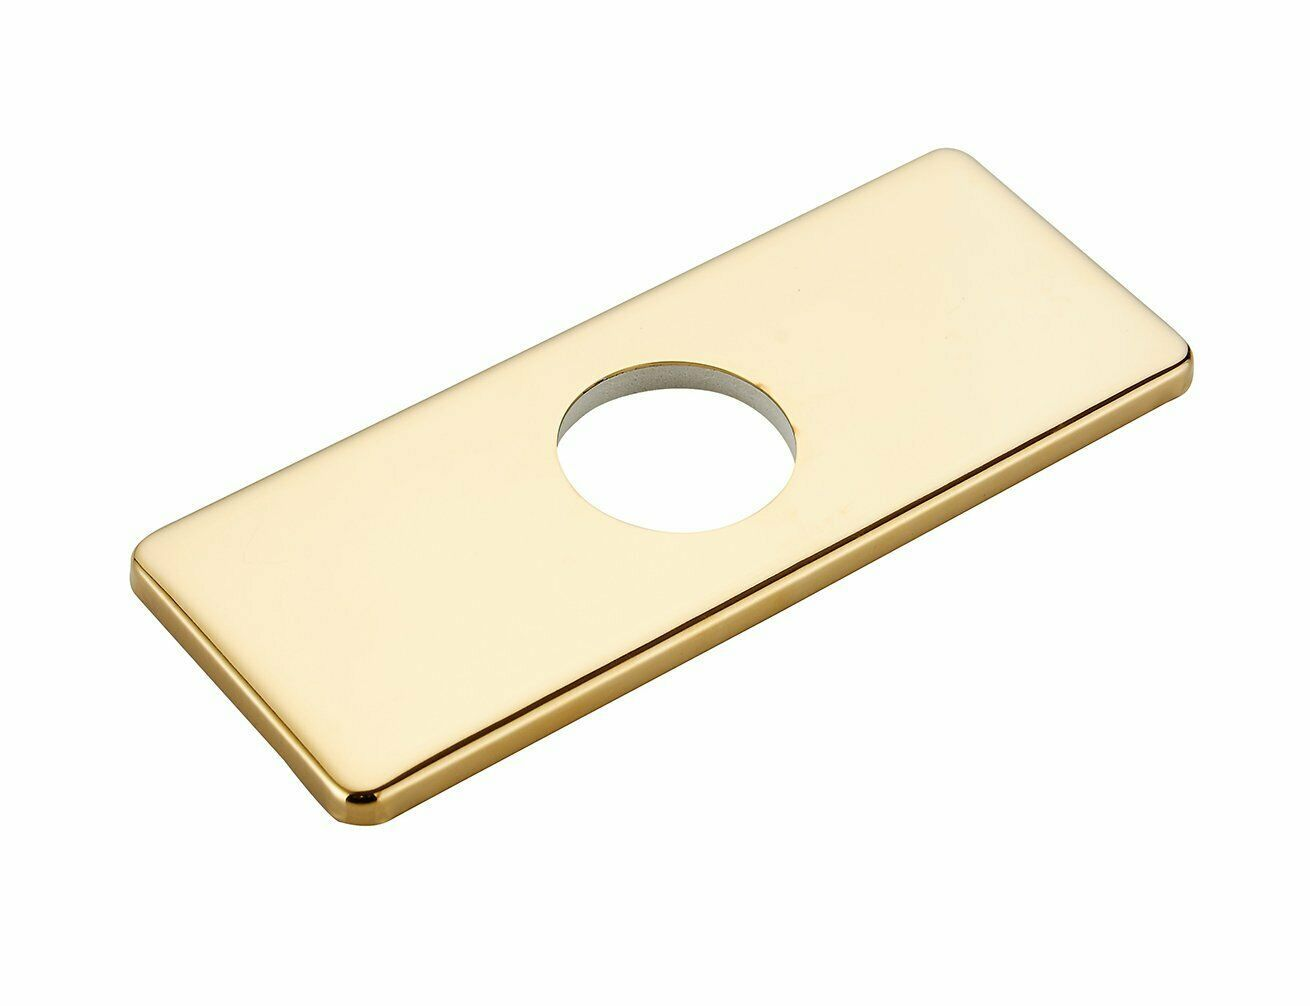 Faucet Hole Cover Deck Plate Kitchen Bathroom Sink Cover Rectangle 6 Inch Gold Kitchen Faucets Ideas Of Kitc Sink Cover Kitchen Faucet Gold Kitchen Faucet